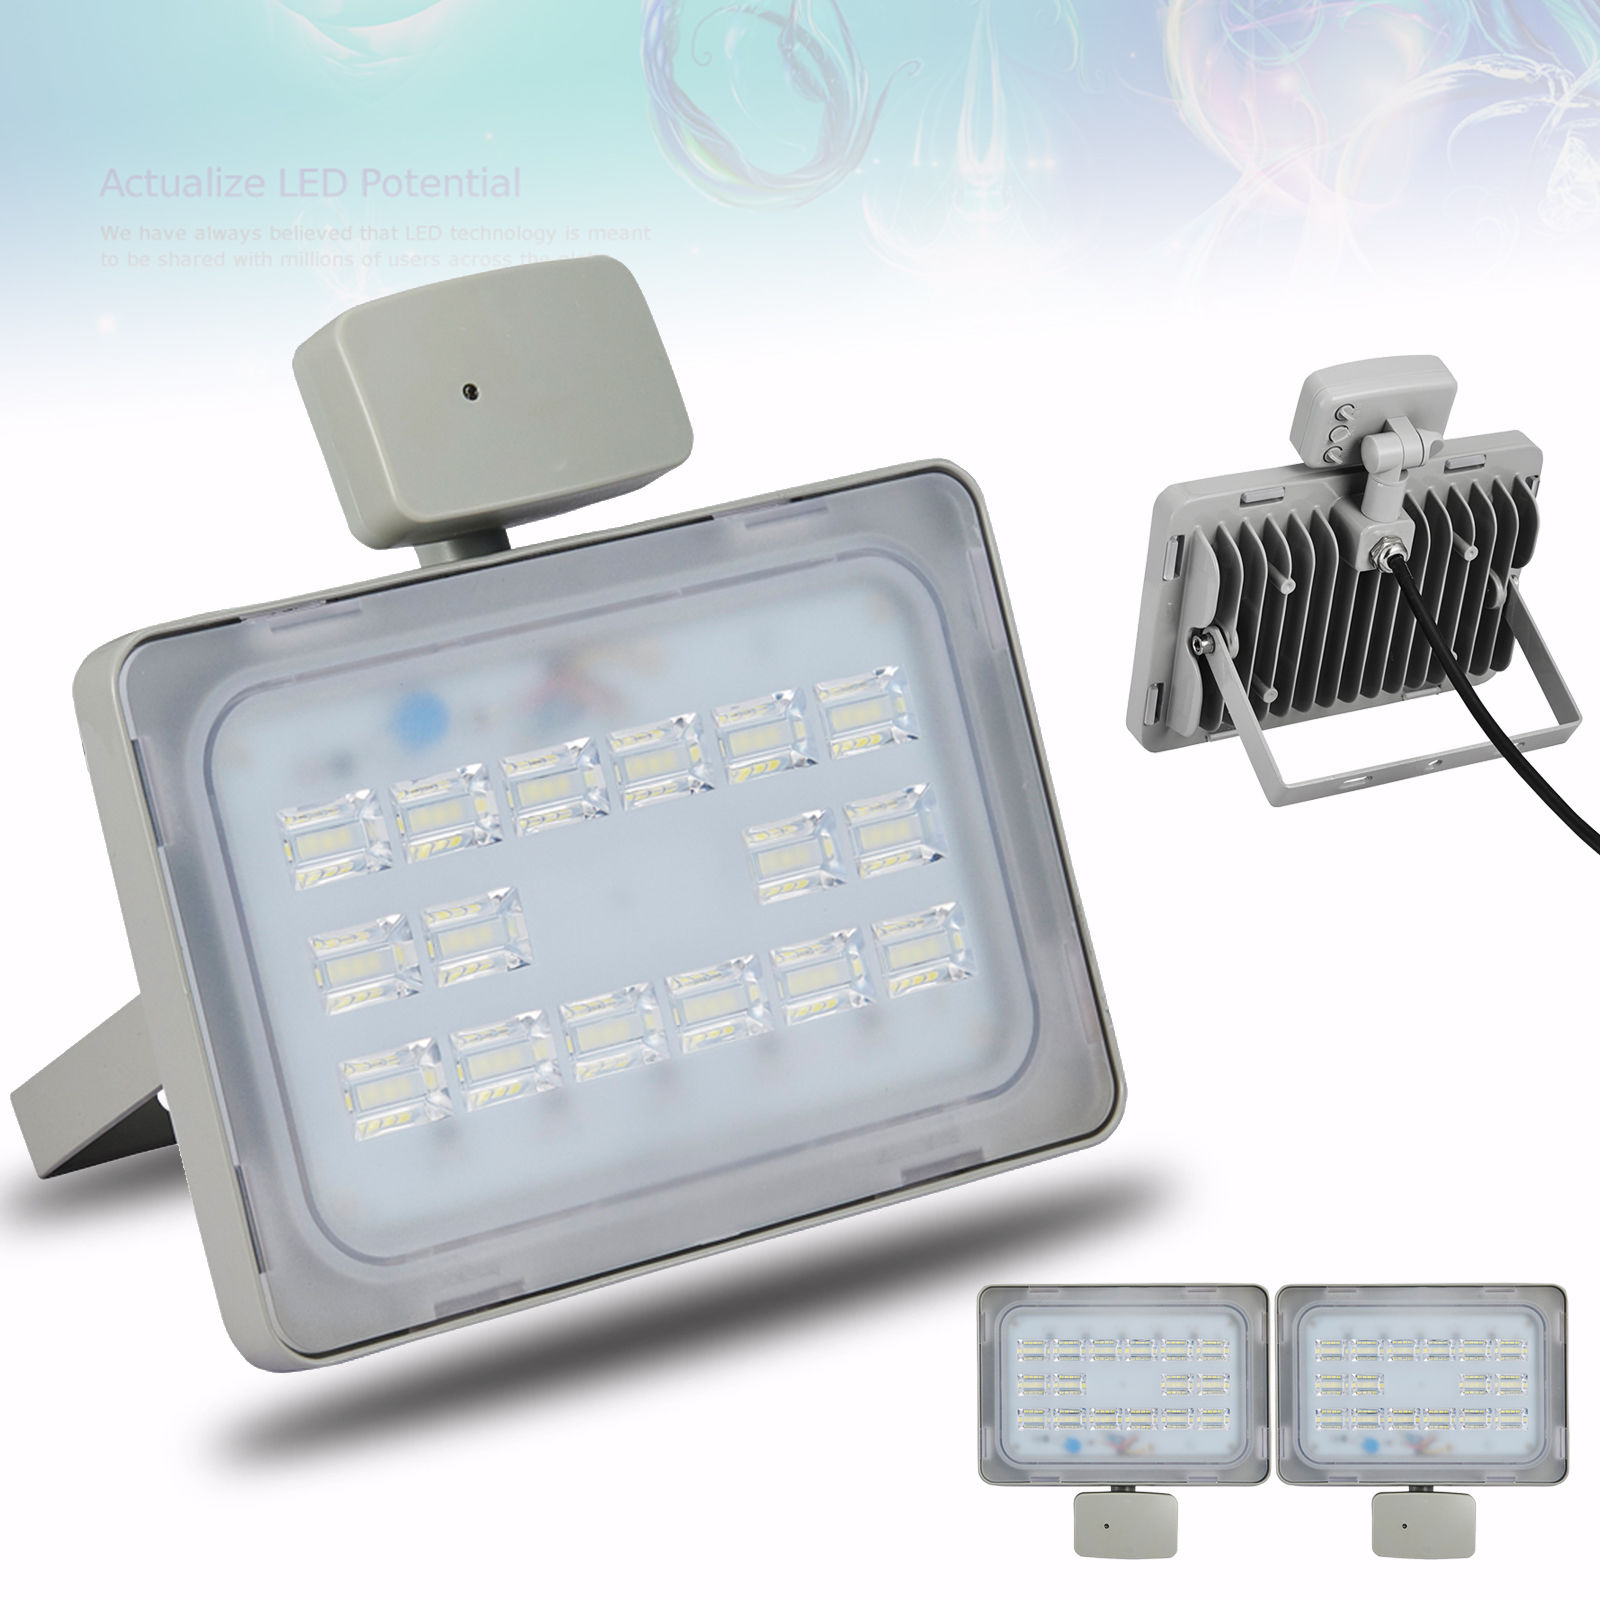 2X Viugreum 50W LED Floodlight Outdoor Garden Lamp Cool White, Microwave Sensor